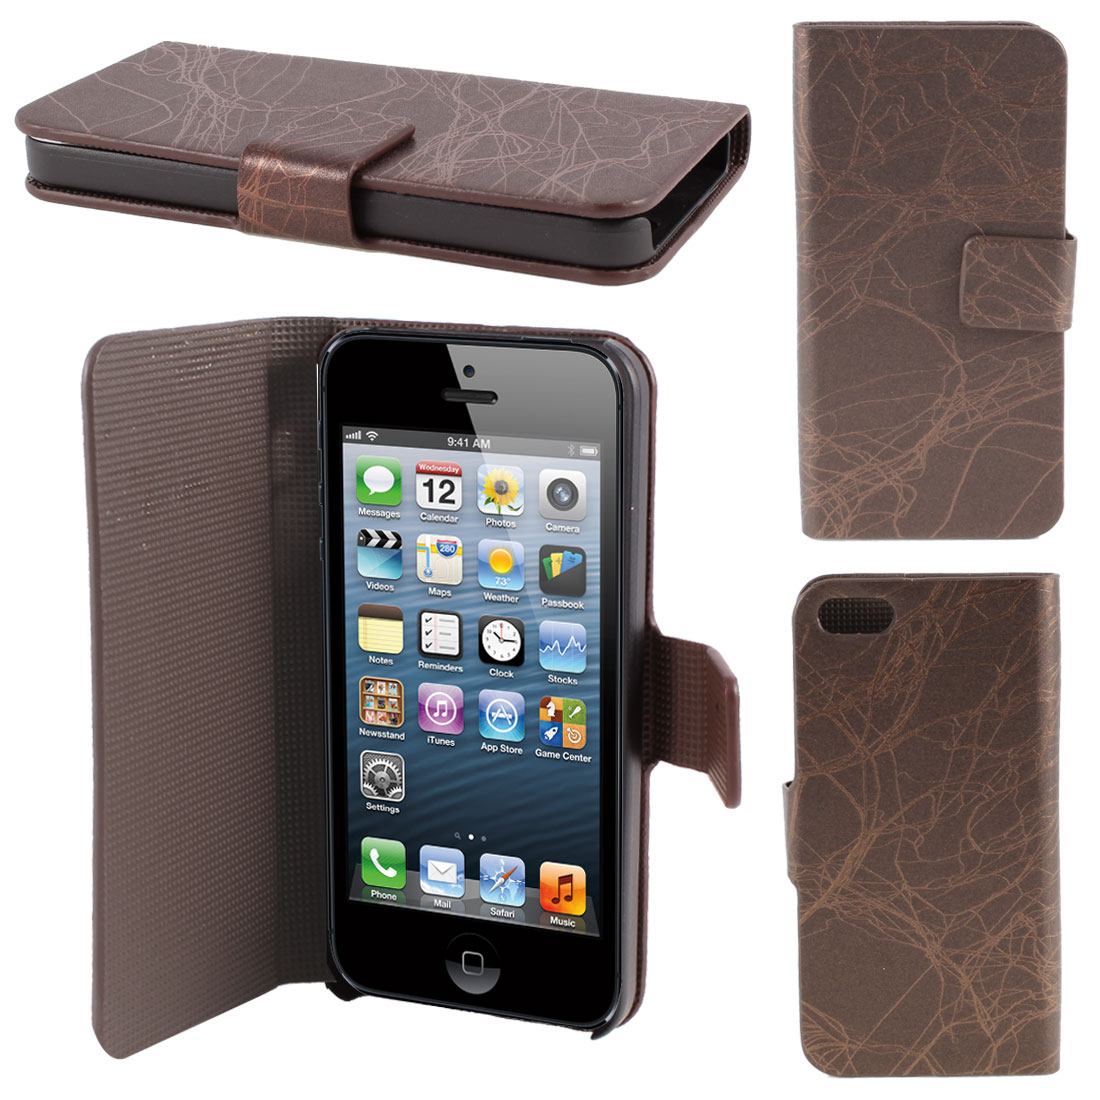 Brown Lightning Print PU Leather Flip Case Cover for iPhone 5 5G 5th Gen